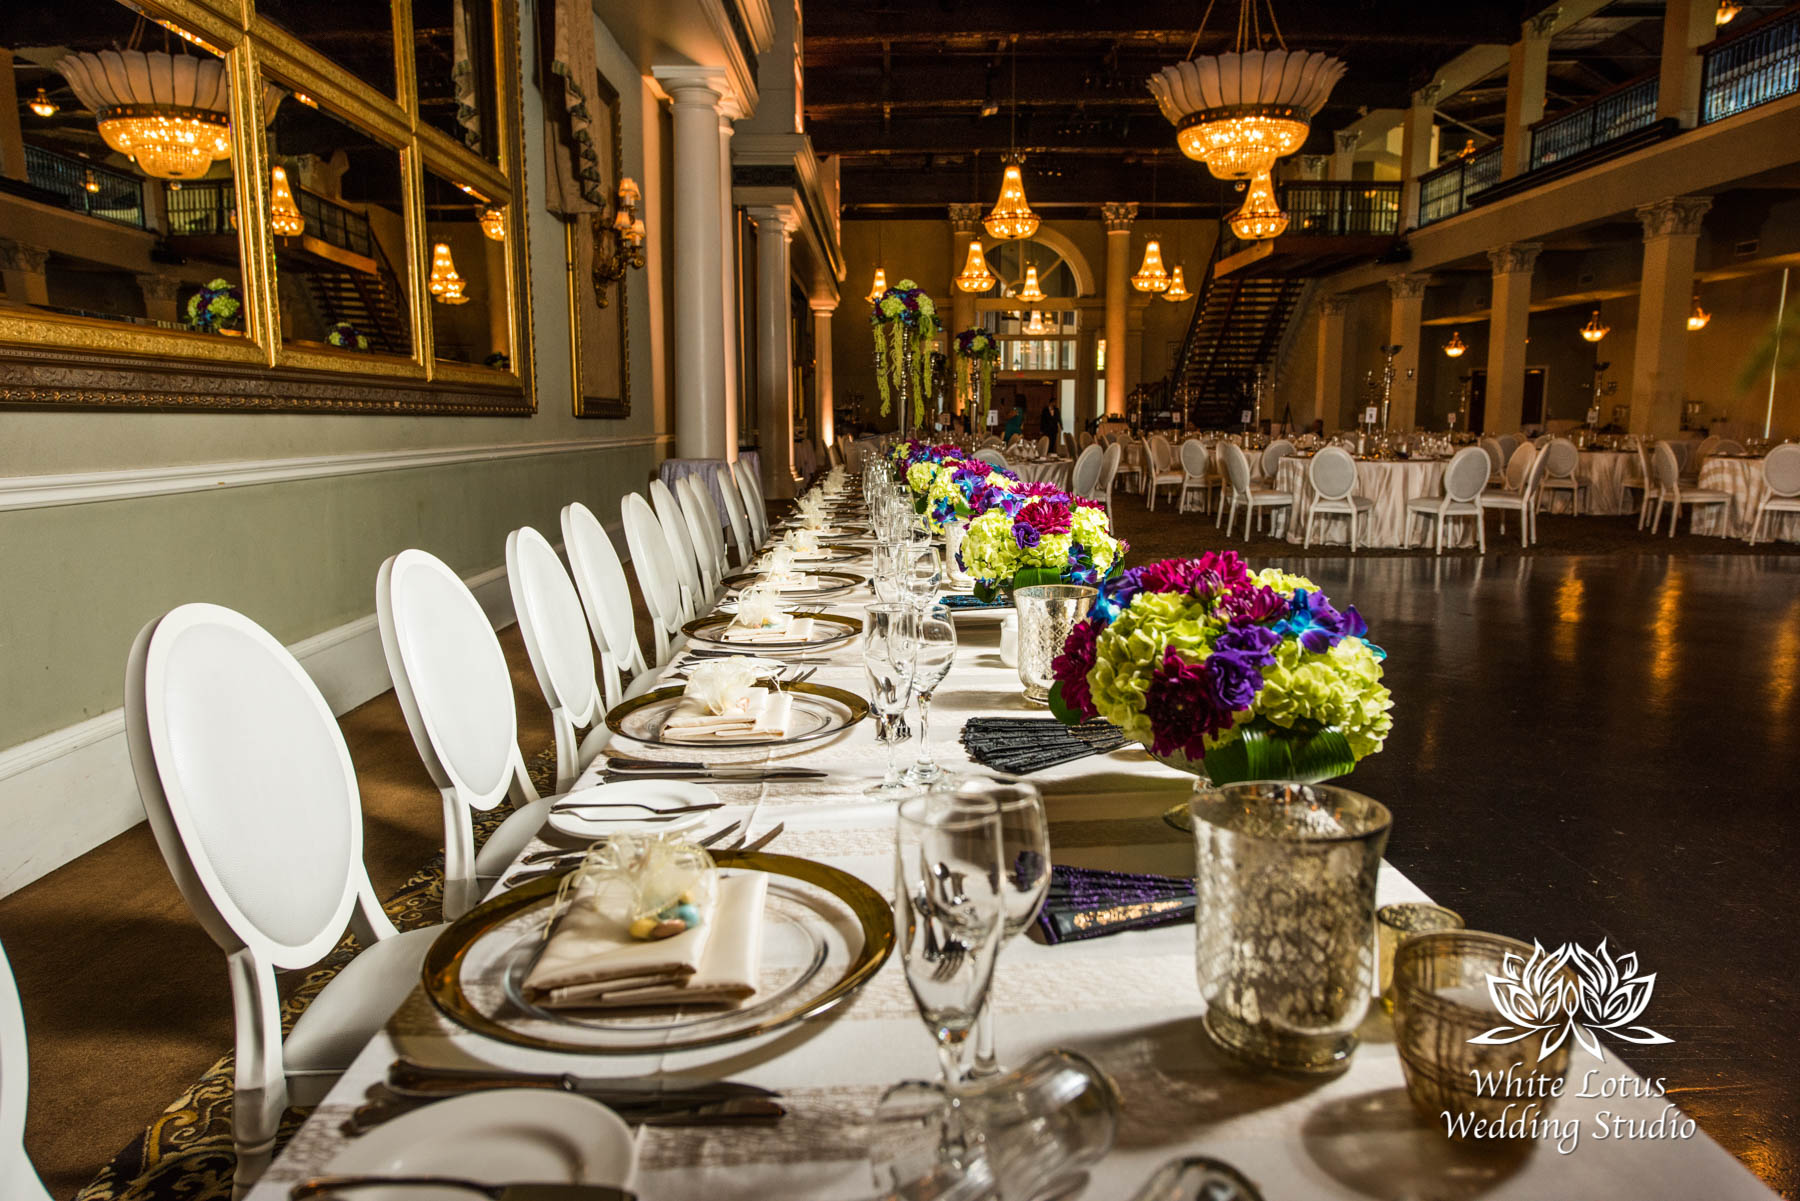 187 - Wedding - Toronto - Liberty Grand - PW